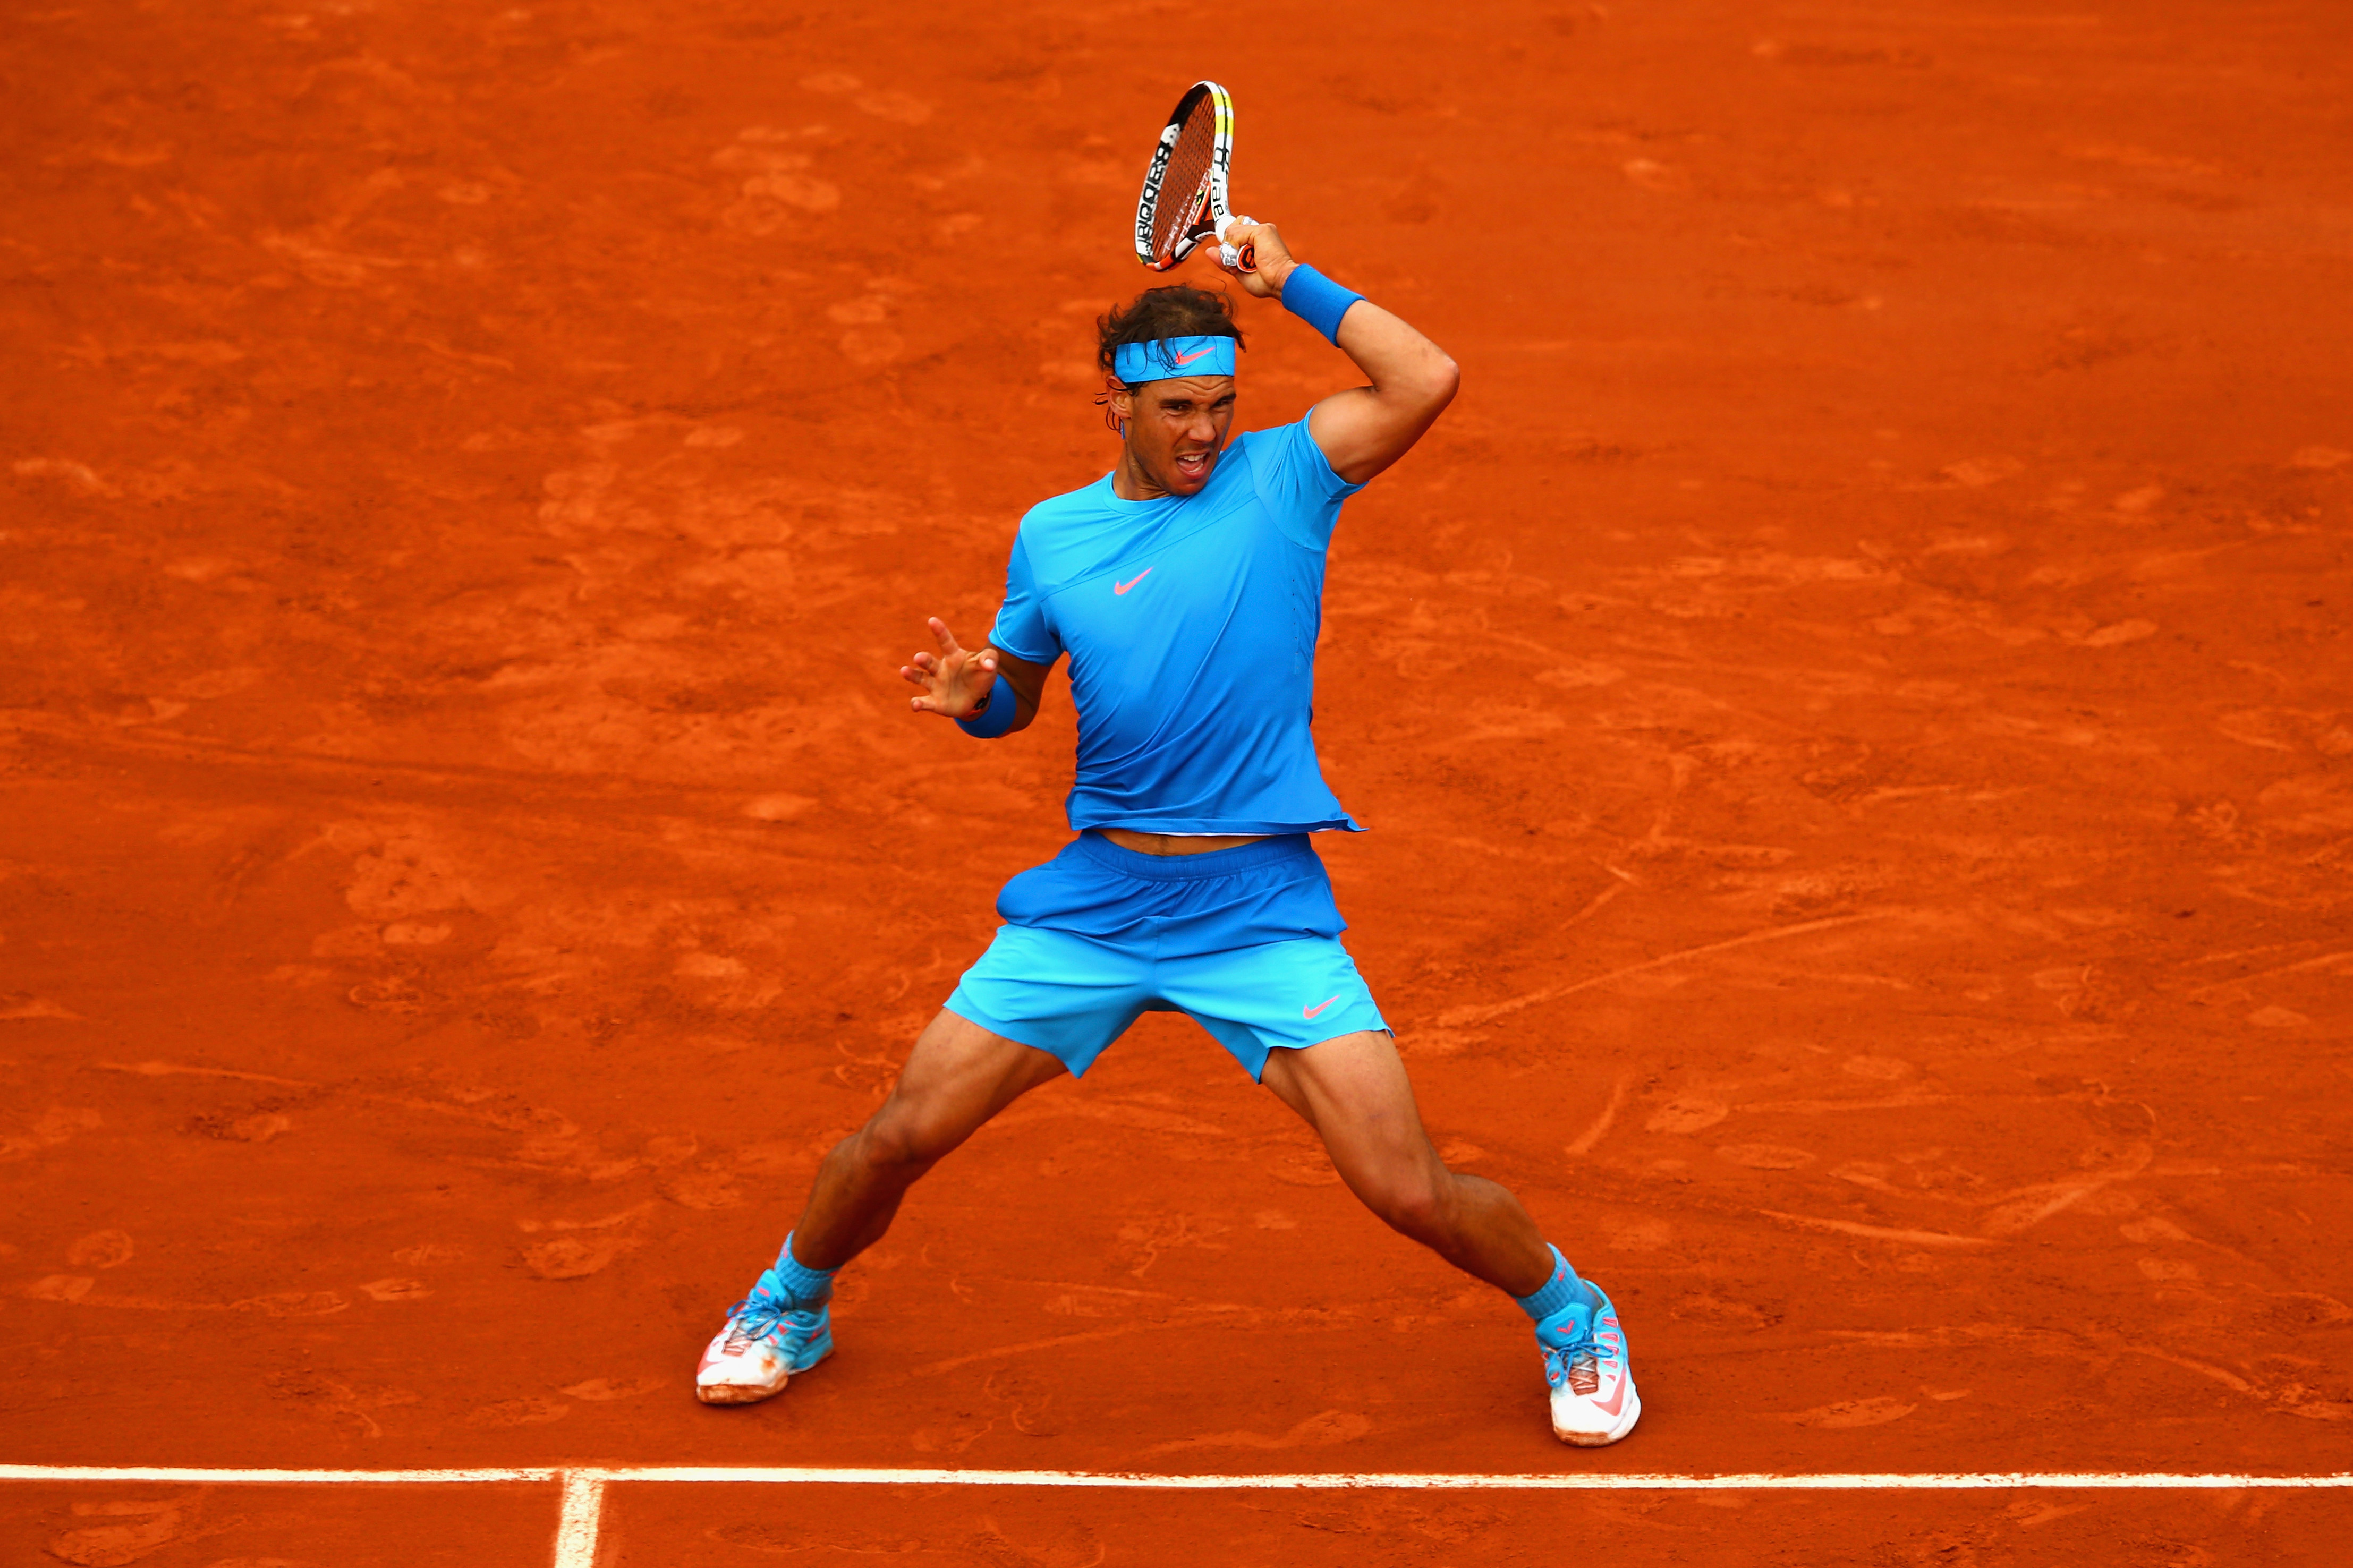 The blue looks great against the red clay but did he really need *that* much blue?